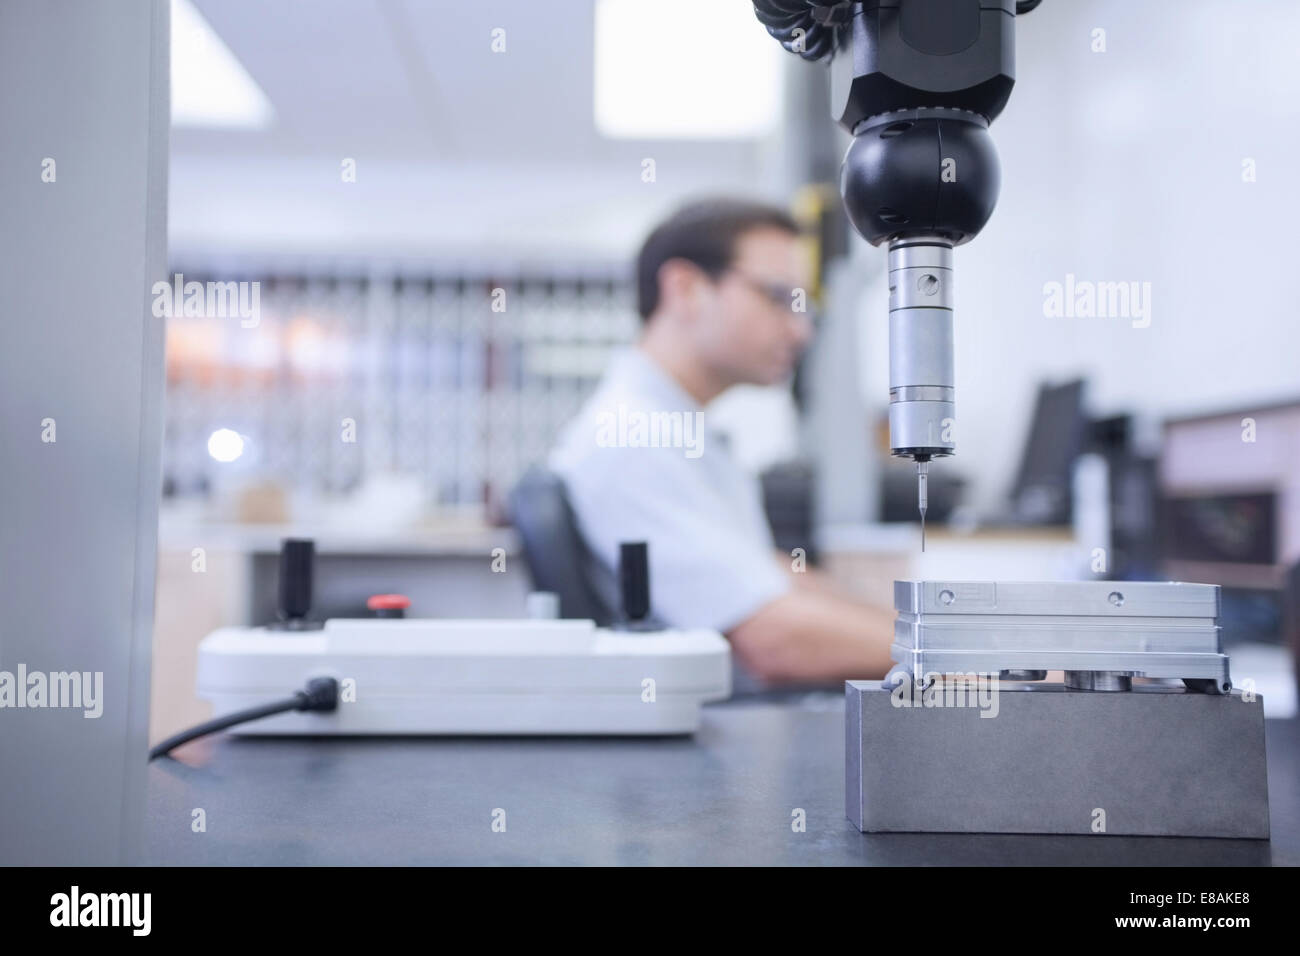 Machine used in CNC engineering - Stock Image